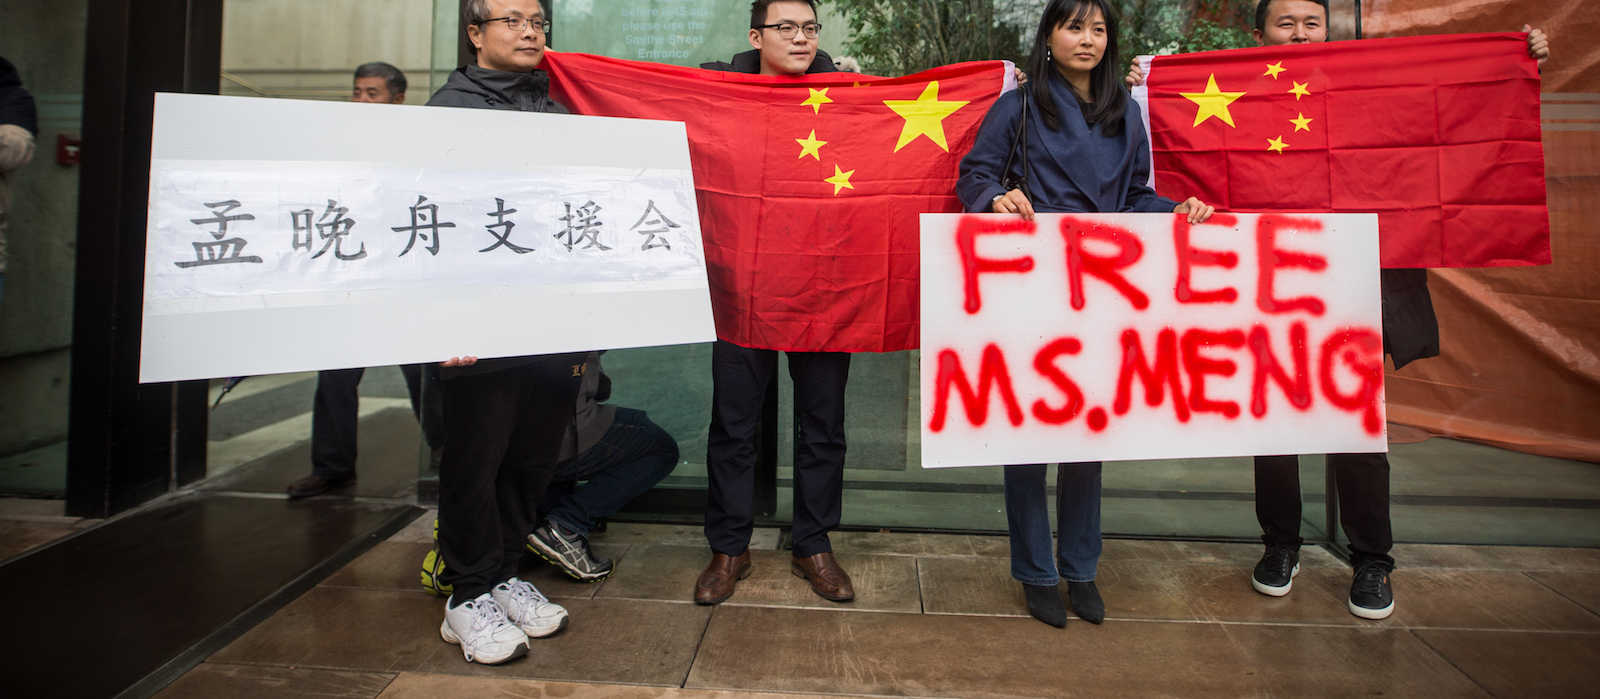 People hold signs and Chinese flags in support Meng Wanzhou outside the Supreme Court in Vancouver. (Photo: James MacDonald via Getty)